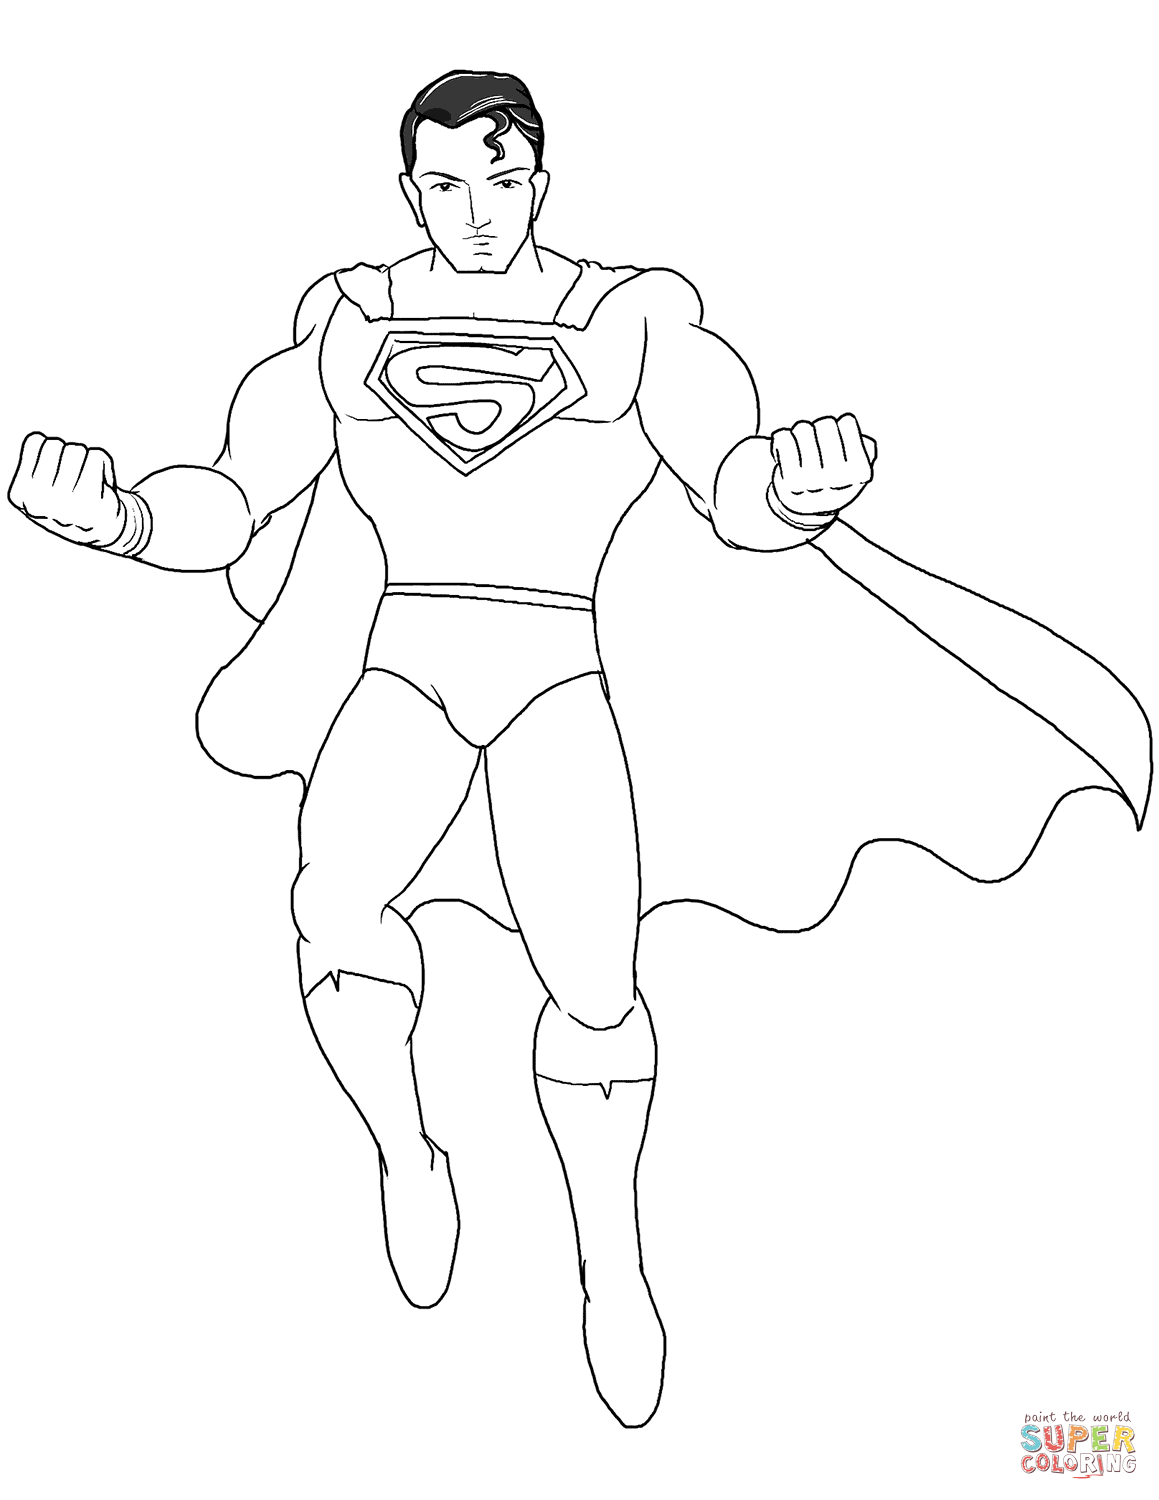 superman cartoon coloring pages superman coloring page free printable coloring pages superman cartoon pages coloring